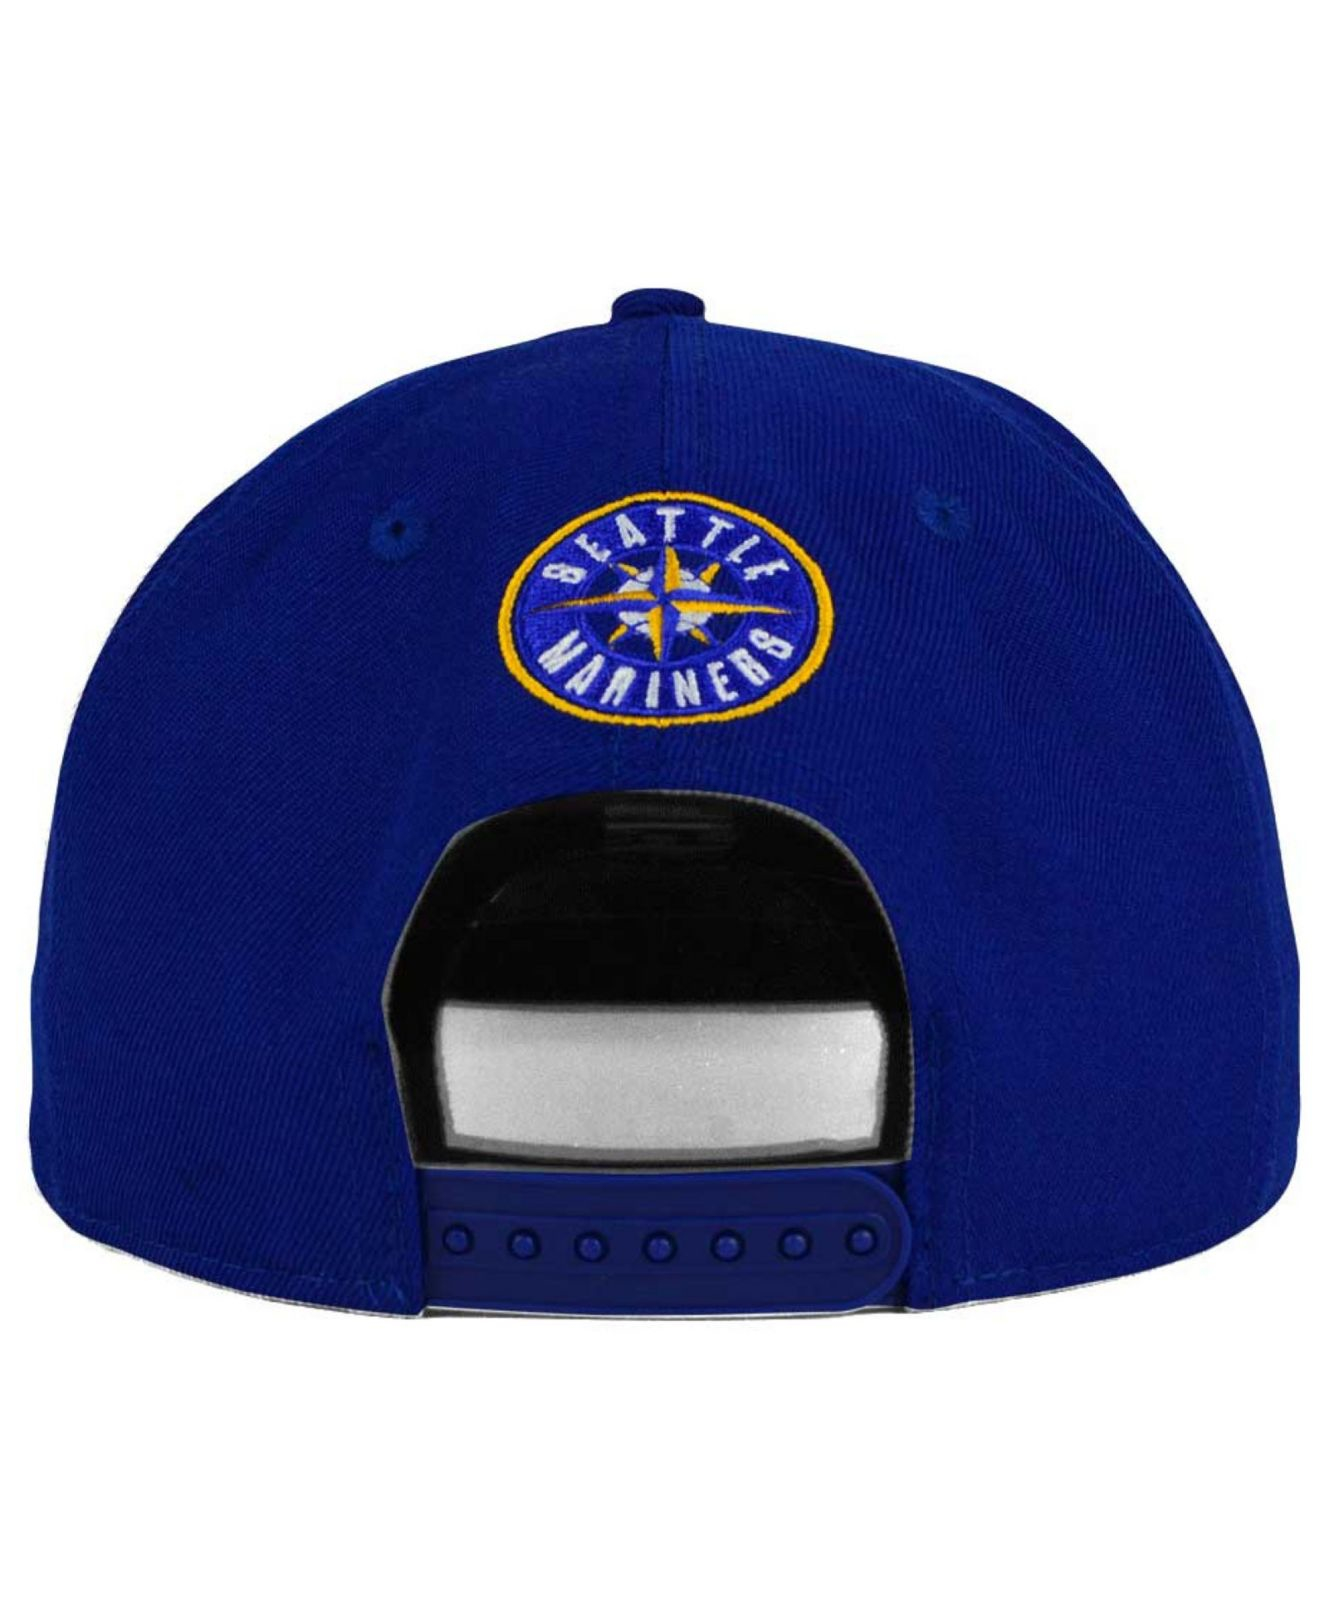 8597ee5f942 ... australia lyst ktz seattle mariners team reflect 9fifty snapback cap in  blue 3a3ad ba166